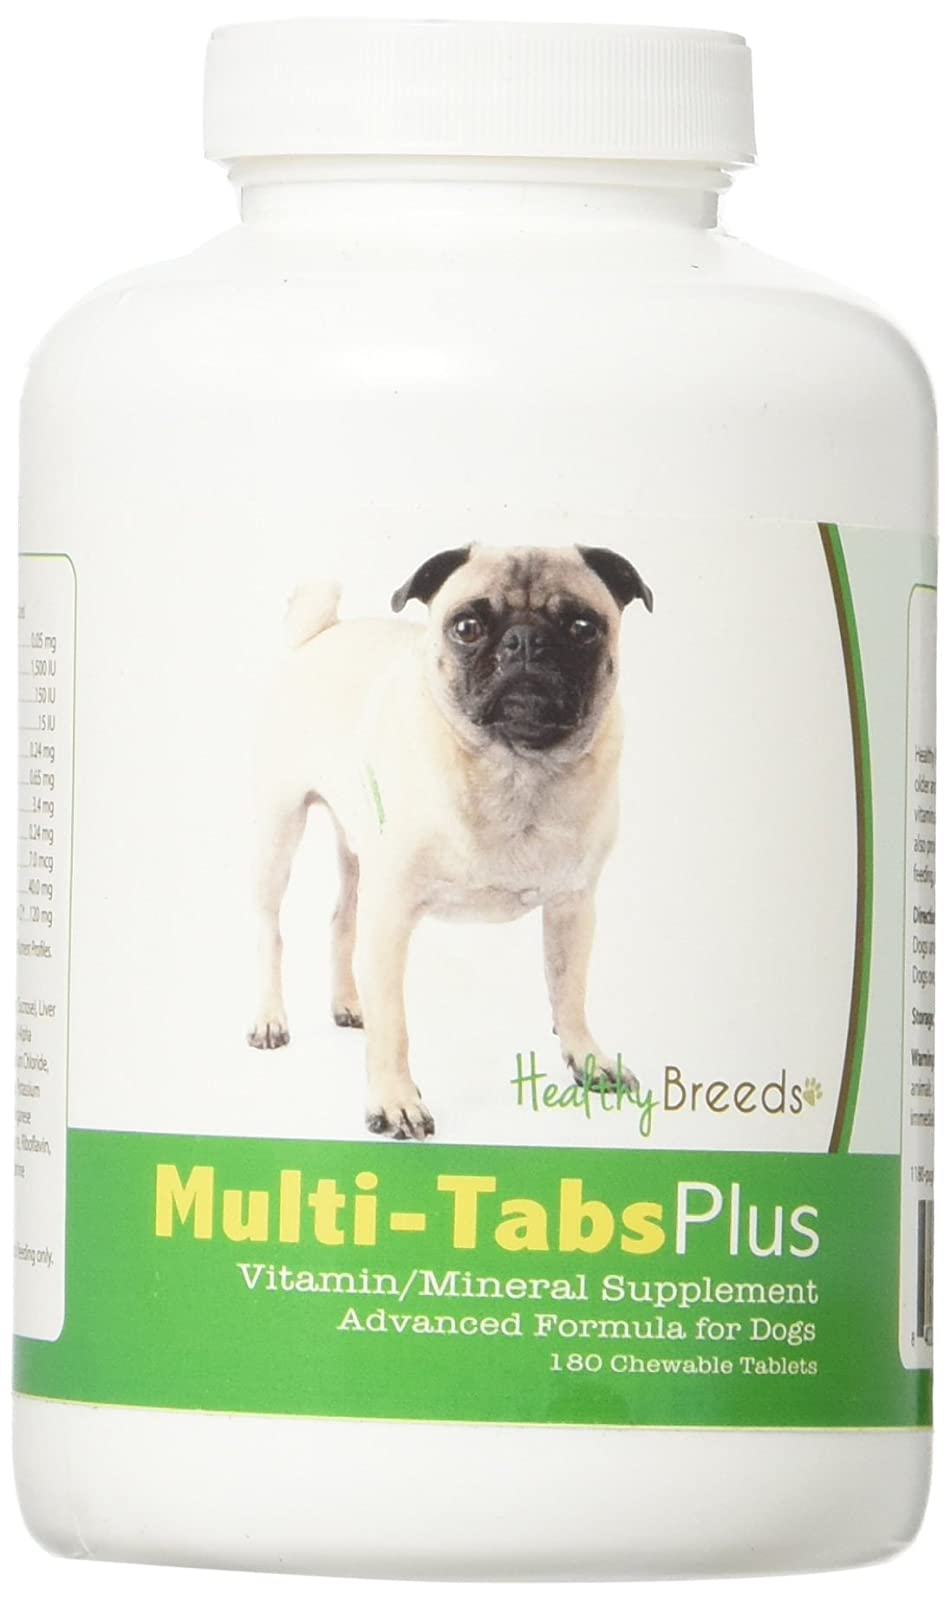 Healthy Breeds Dog One A Day Supplement Pug, Brown - 1